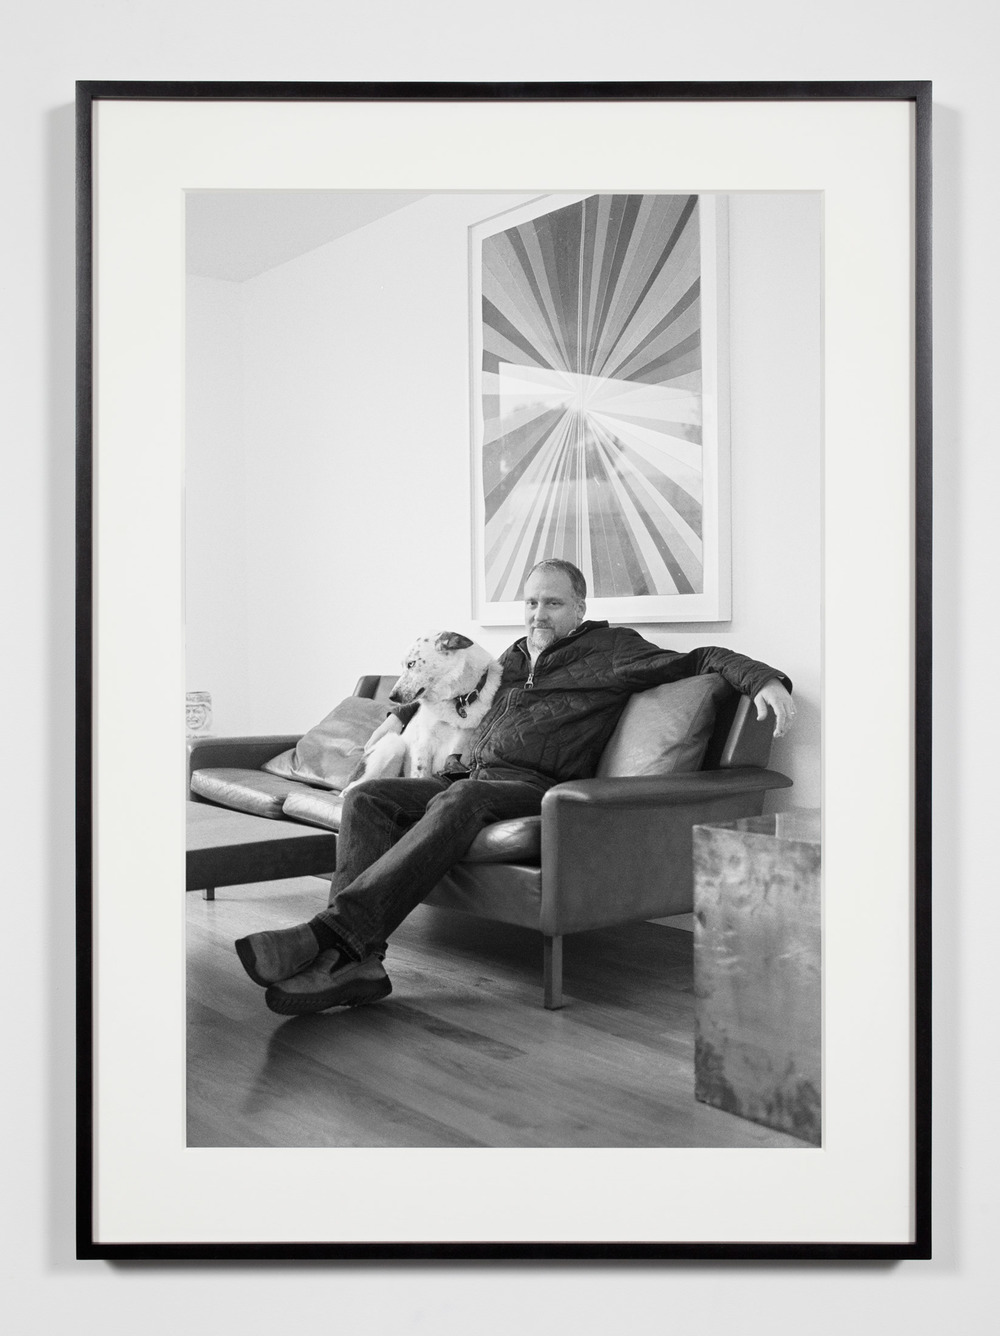 Gallery Owner with Dog, Los Angeles, California, February 5, 2010    2011   Epson Ultrachrome K3 archival ink jet print on Hahnemühle Photo Rag paper  36 3/8 x 26 3/8 inches   Industrial Portraits, 2008–